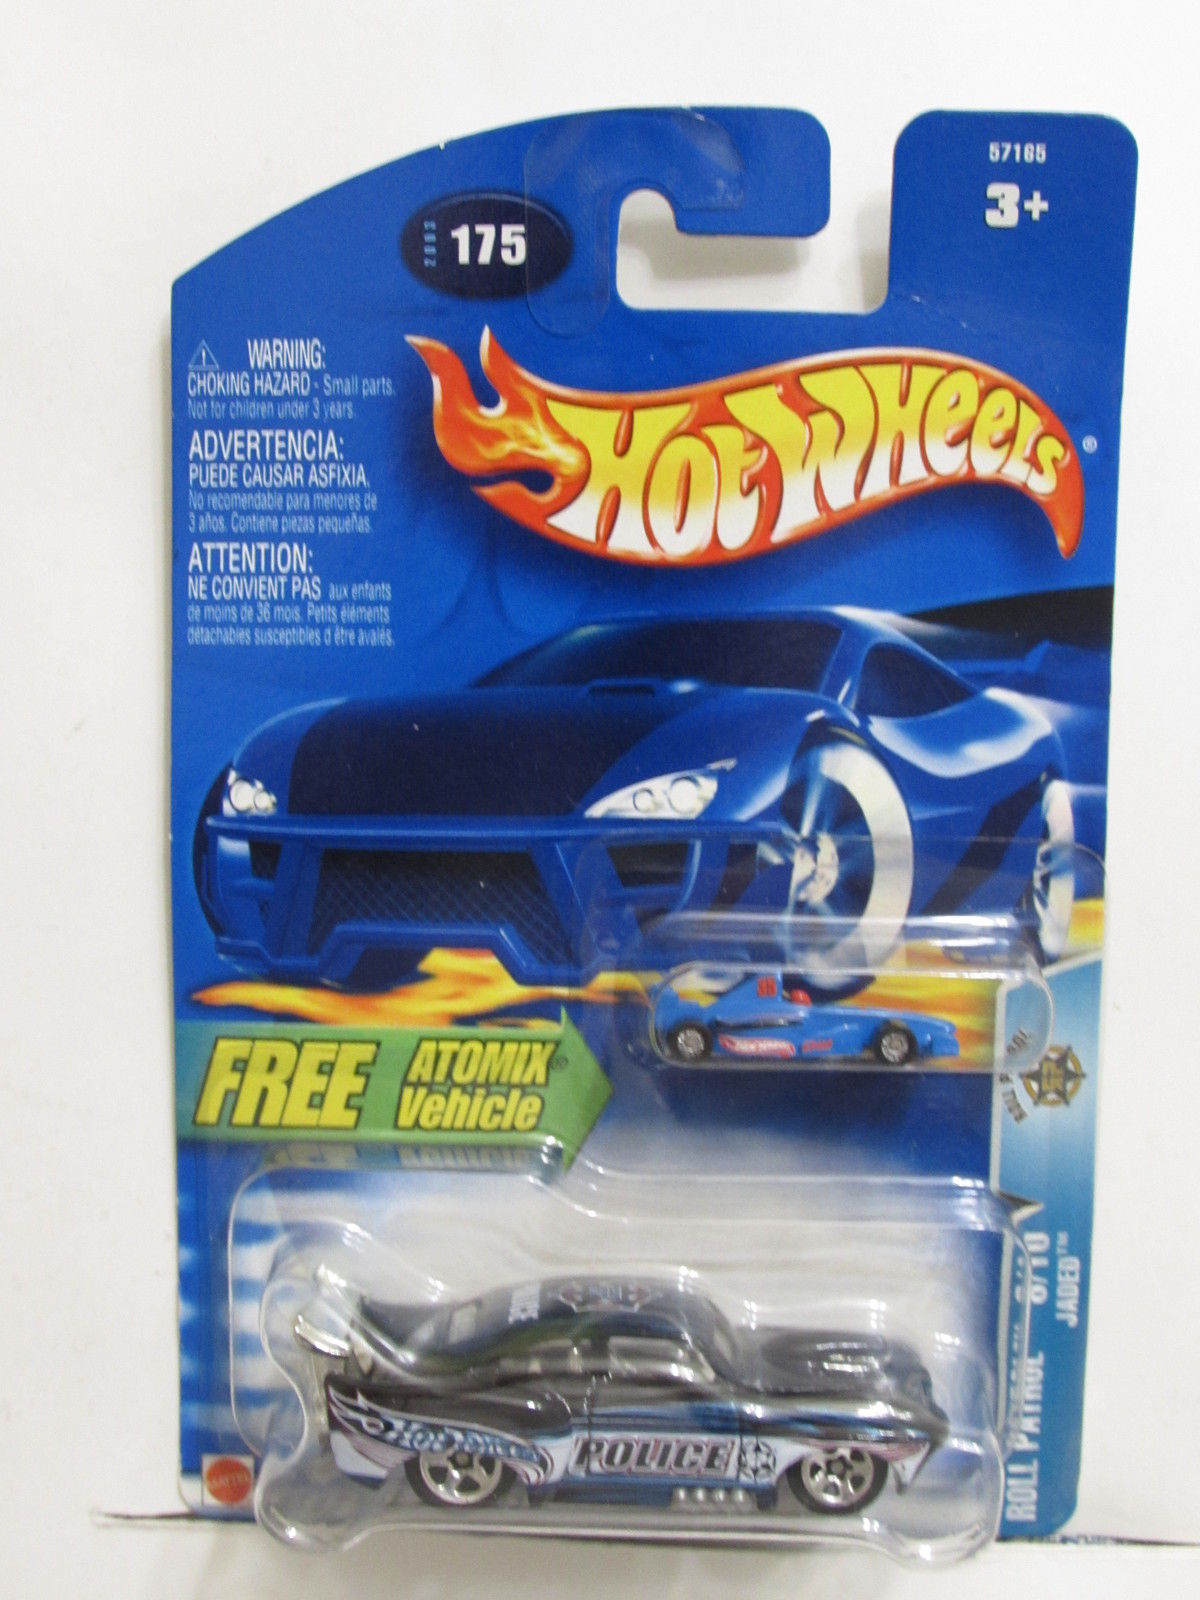 HOT WHEELS 2003 ROLL PATROL JADED W/ FREE ATOMIX VEHICLE